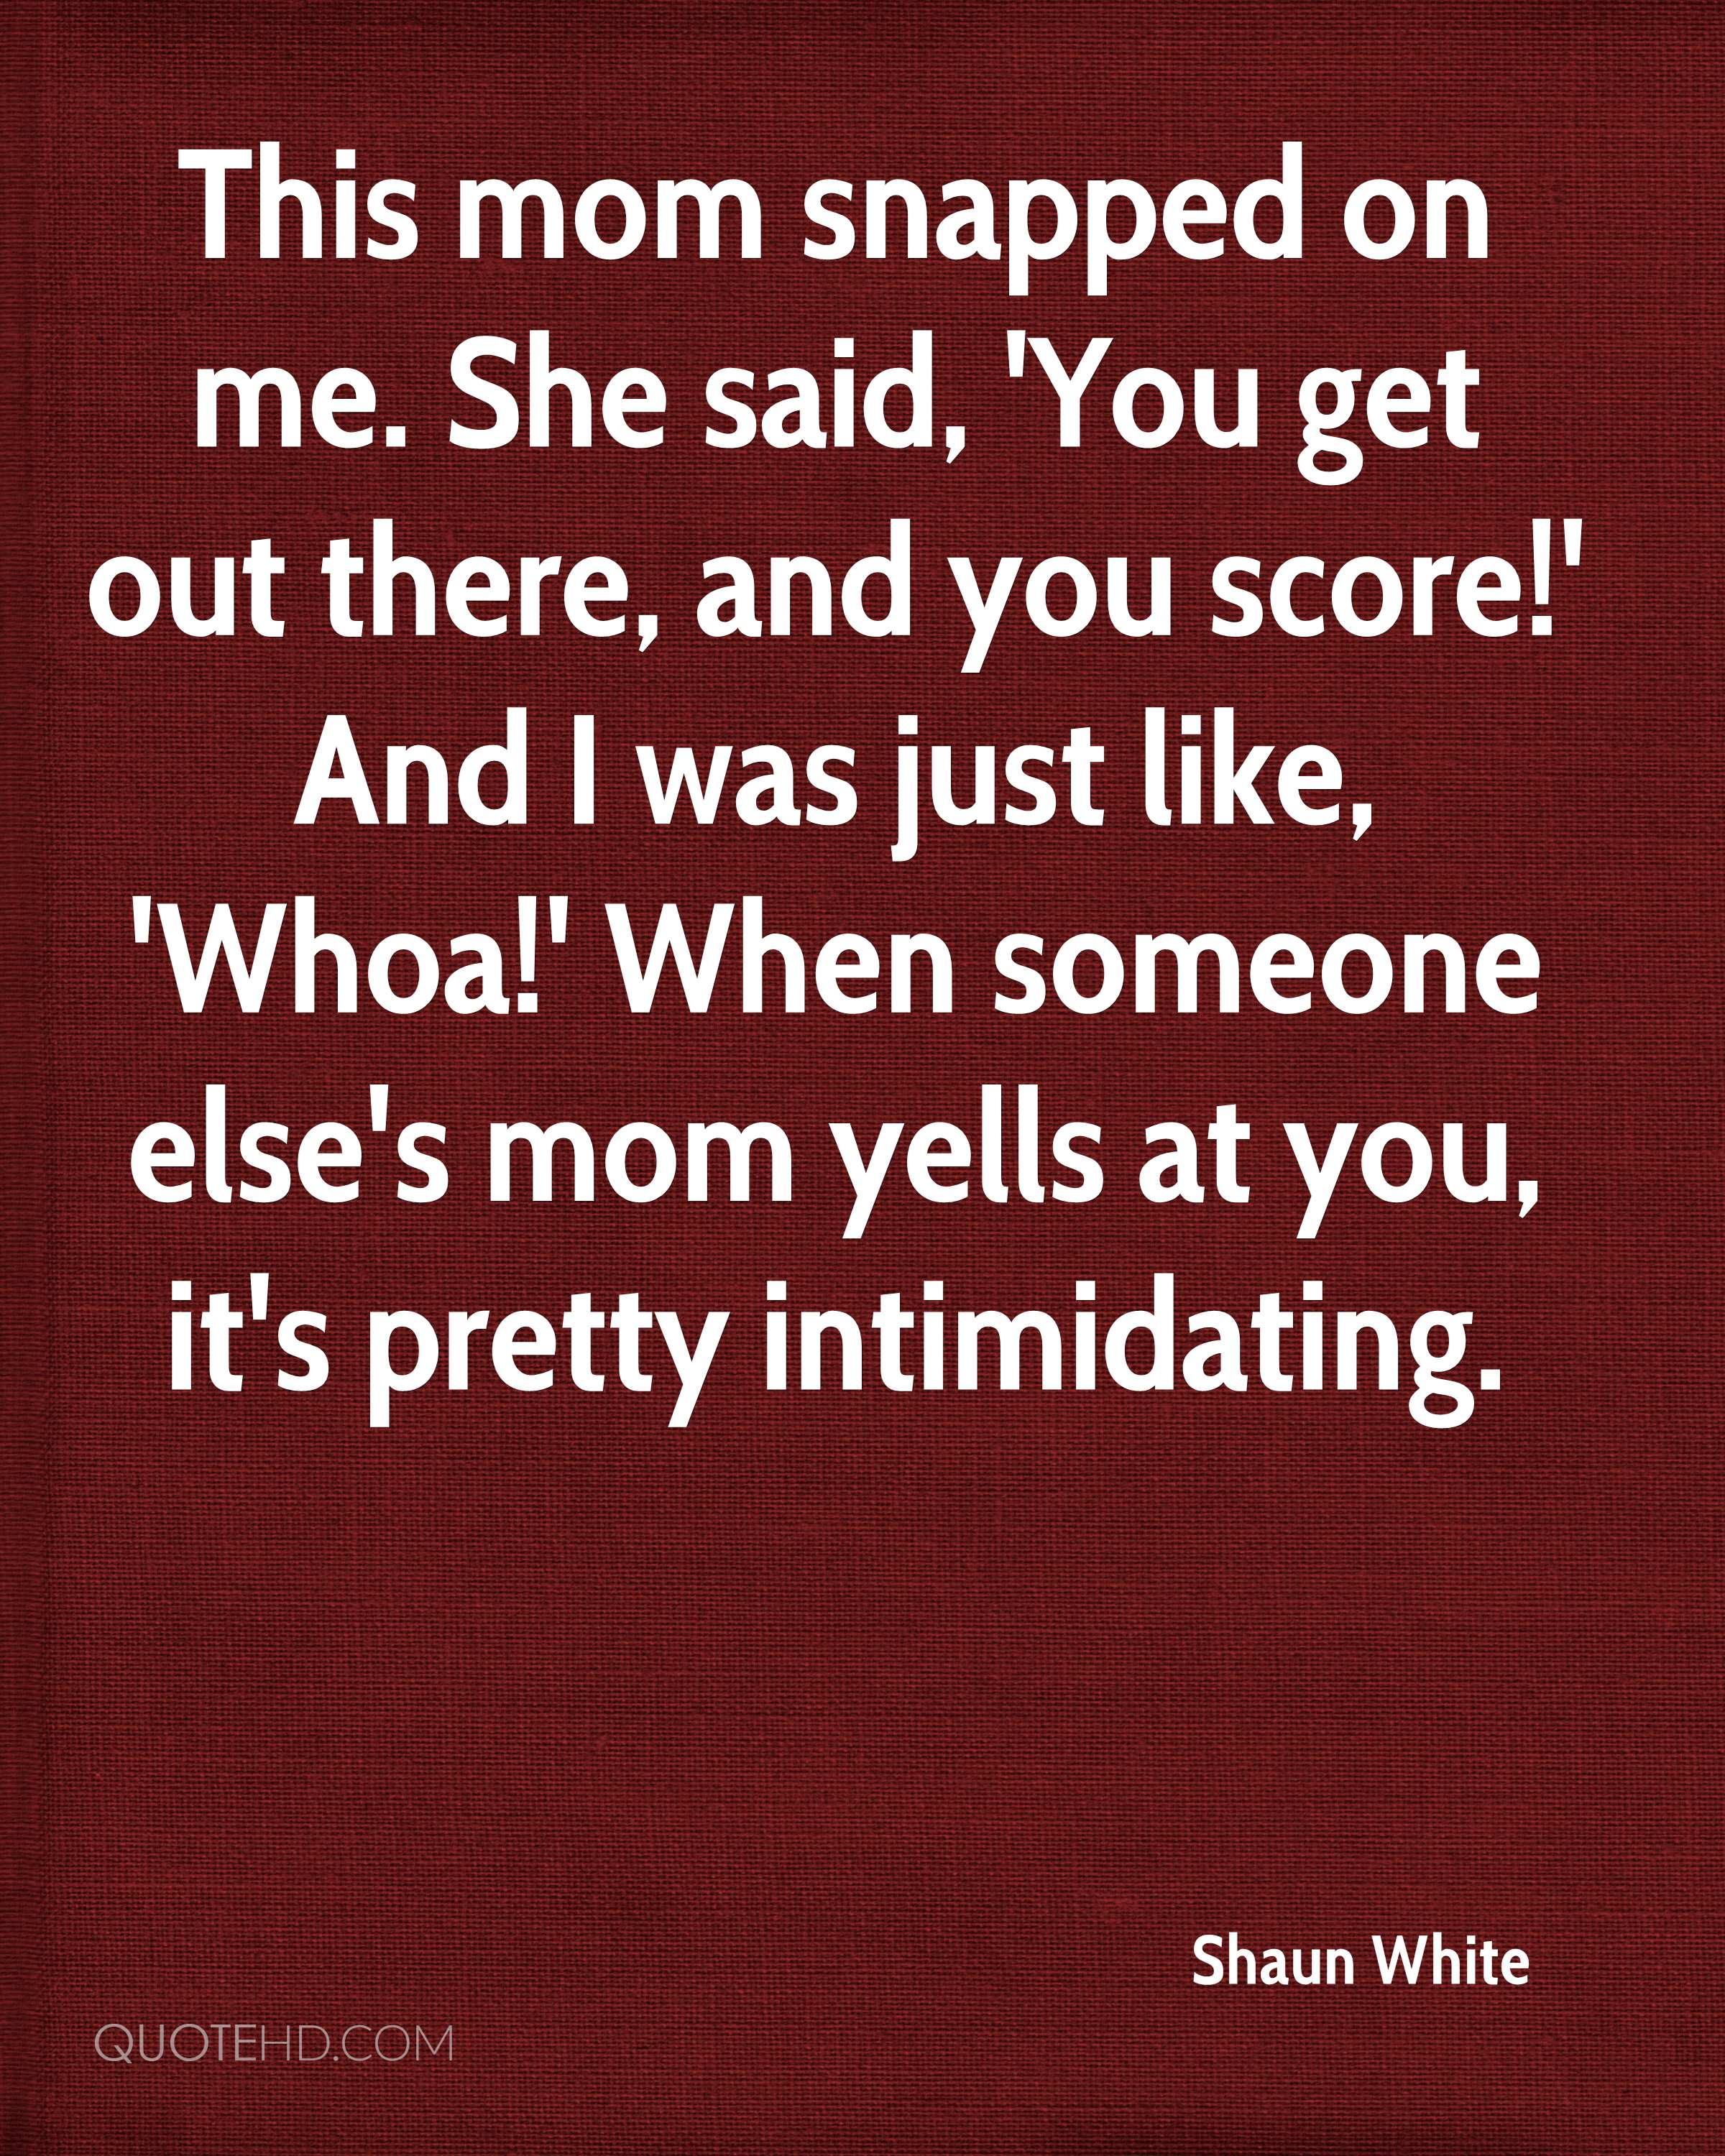 This mom snapped on me. She said, 'You get out there, and you score!' And I was just like, 'Whoa!' When someone else's mom yells at you, it's pretty intimidating.